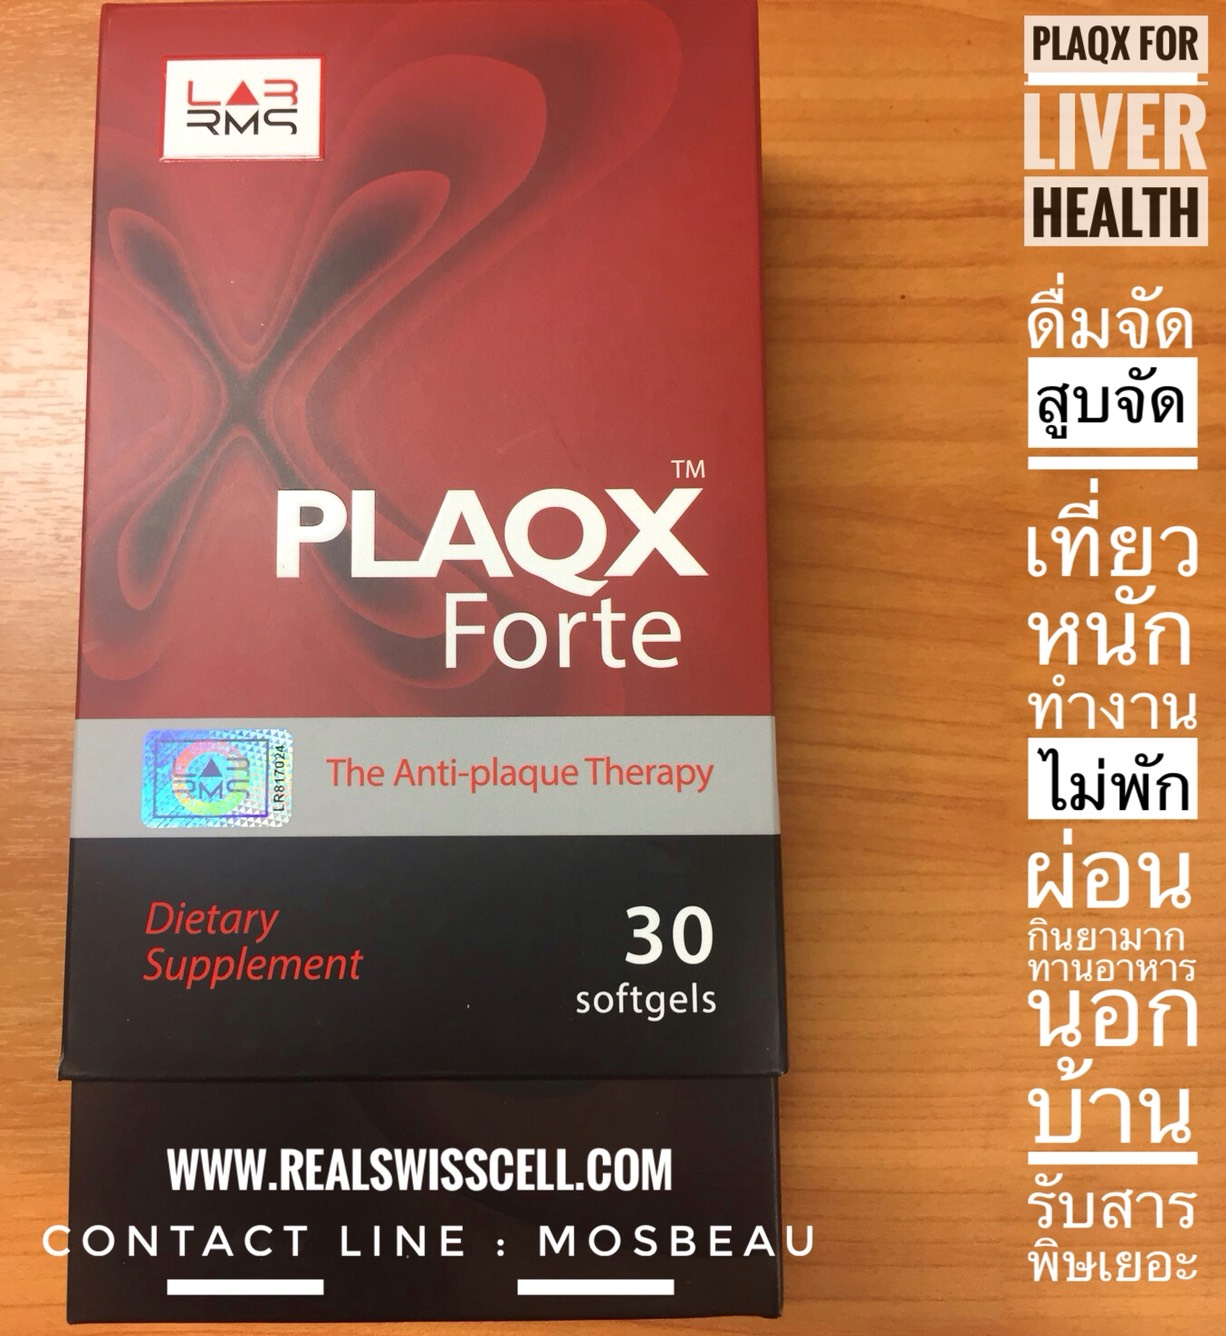 MF3 Plaqx Forte (Softgels) for Liver Health